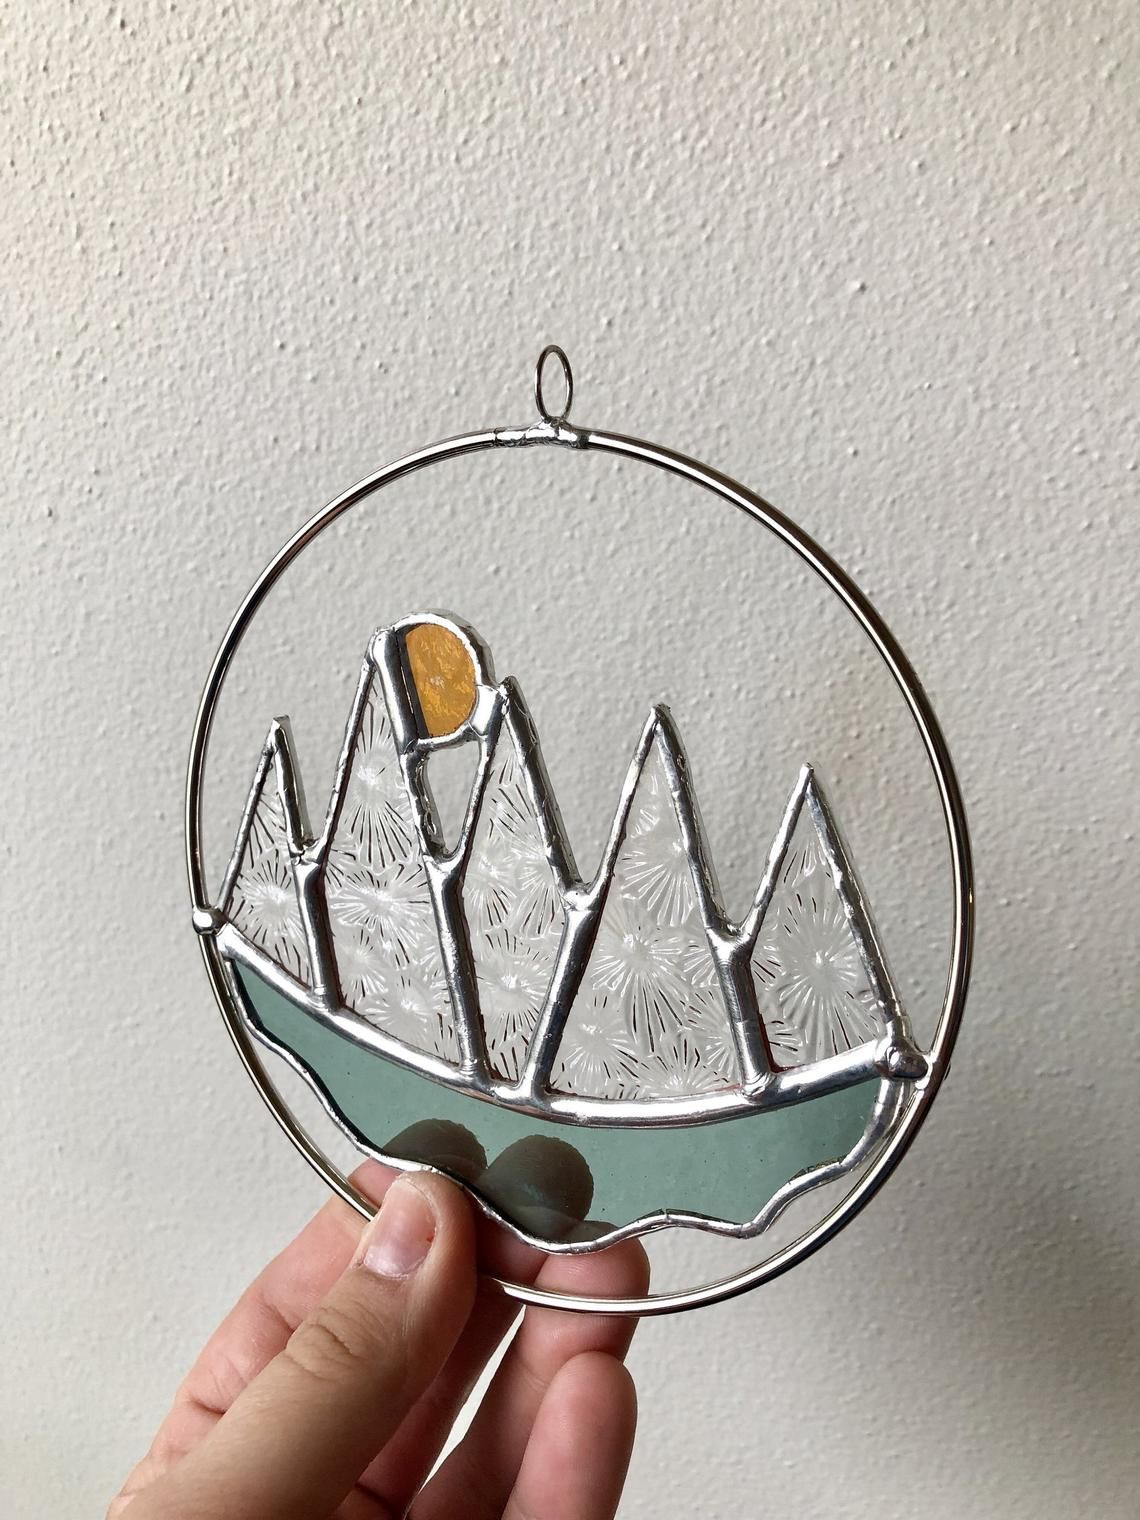 Stained Glass Geometric Nature Art Sun And Mountains Stained Glass Crafts Stained Glass Diy Stained Glass Ornaments